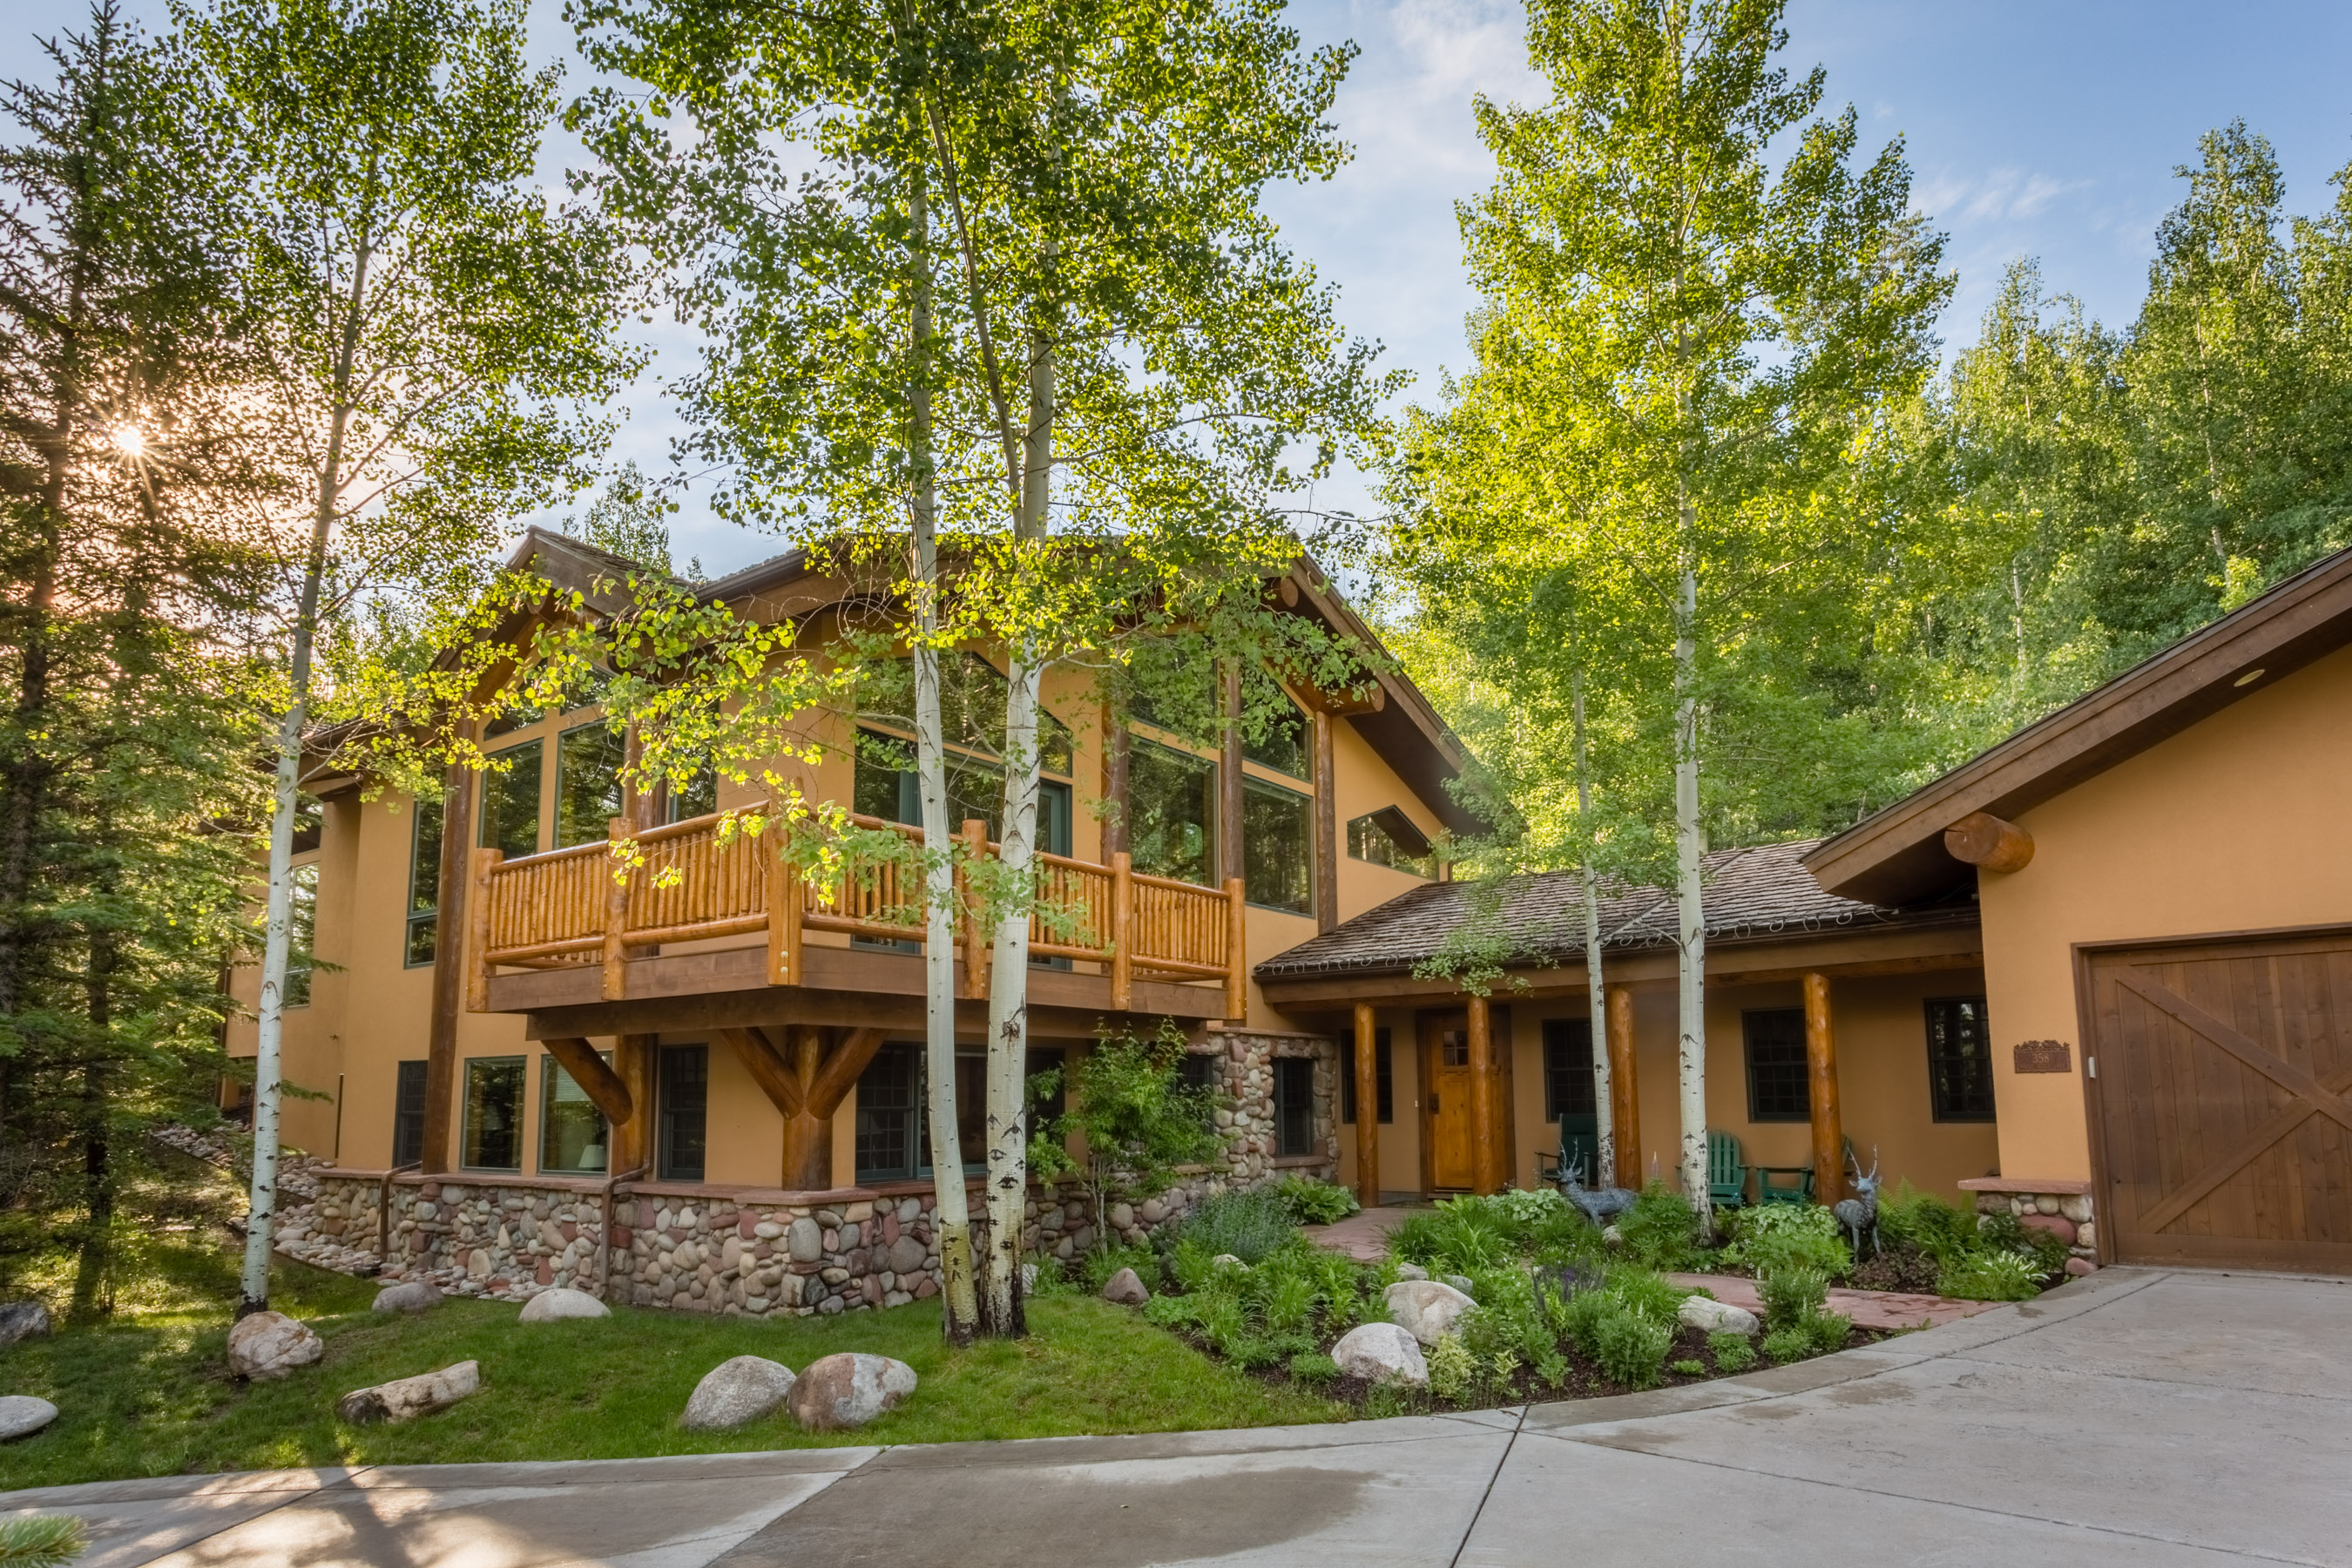 Casa Unifamiliar por un Venta en Warm, Elegant Snowmass Home 358 Maple Ridge Ln Snowmass Village, Colorado, 81615 Estados Unidos